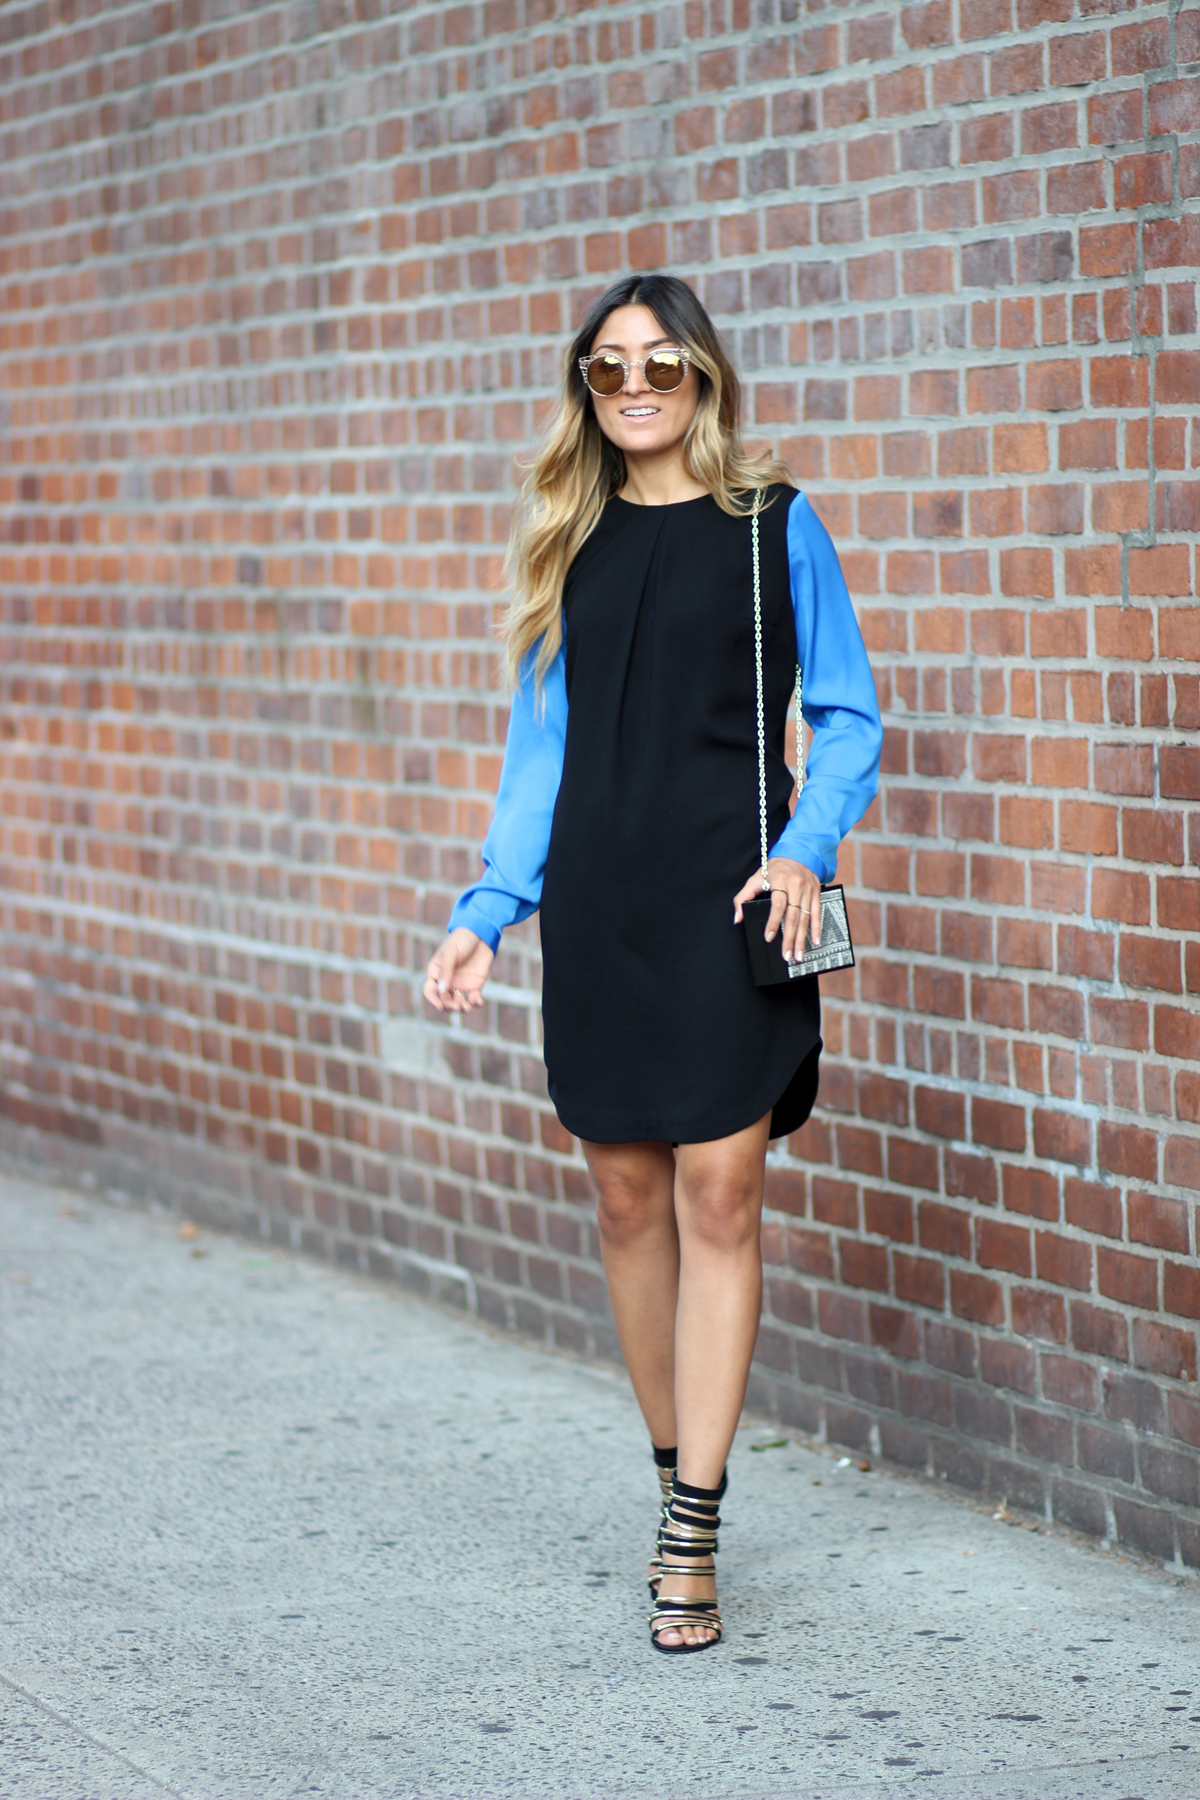 LBD, NYC, New York, NYFW, MBFW, Streetstyle, Melrodstyle, Fashion Week